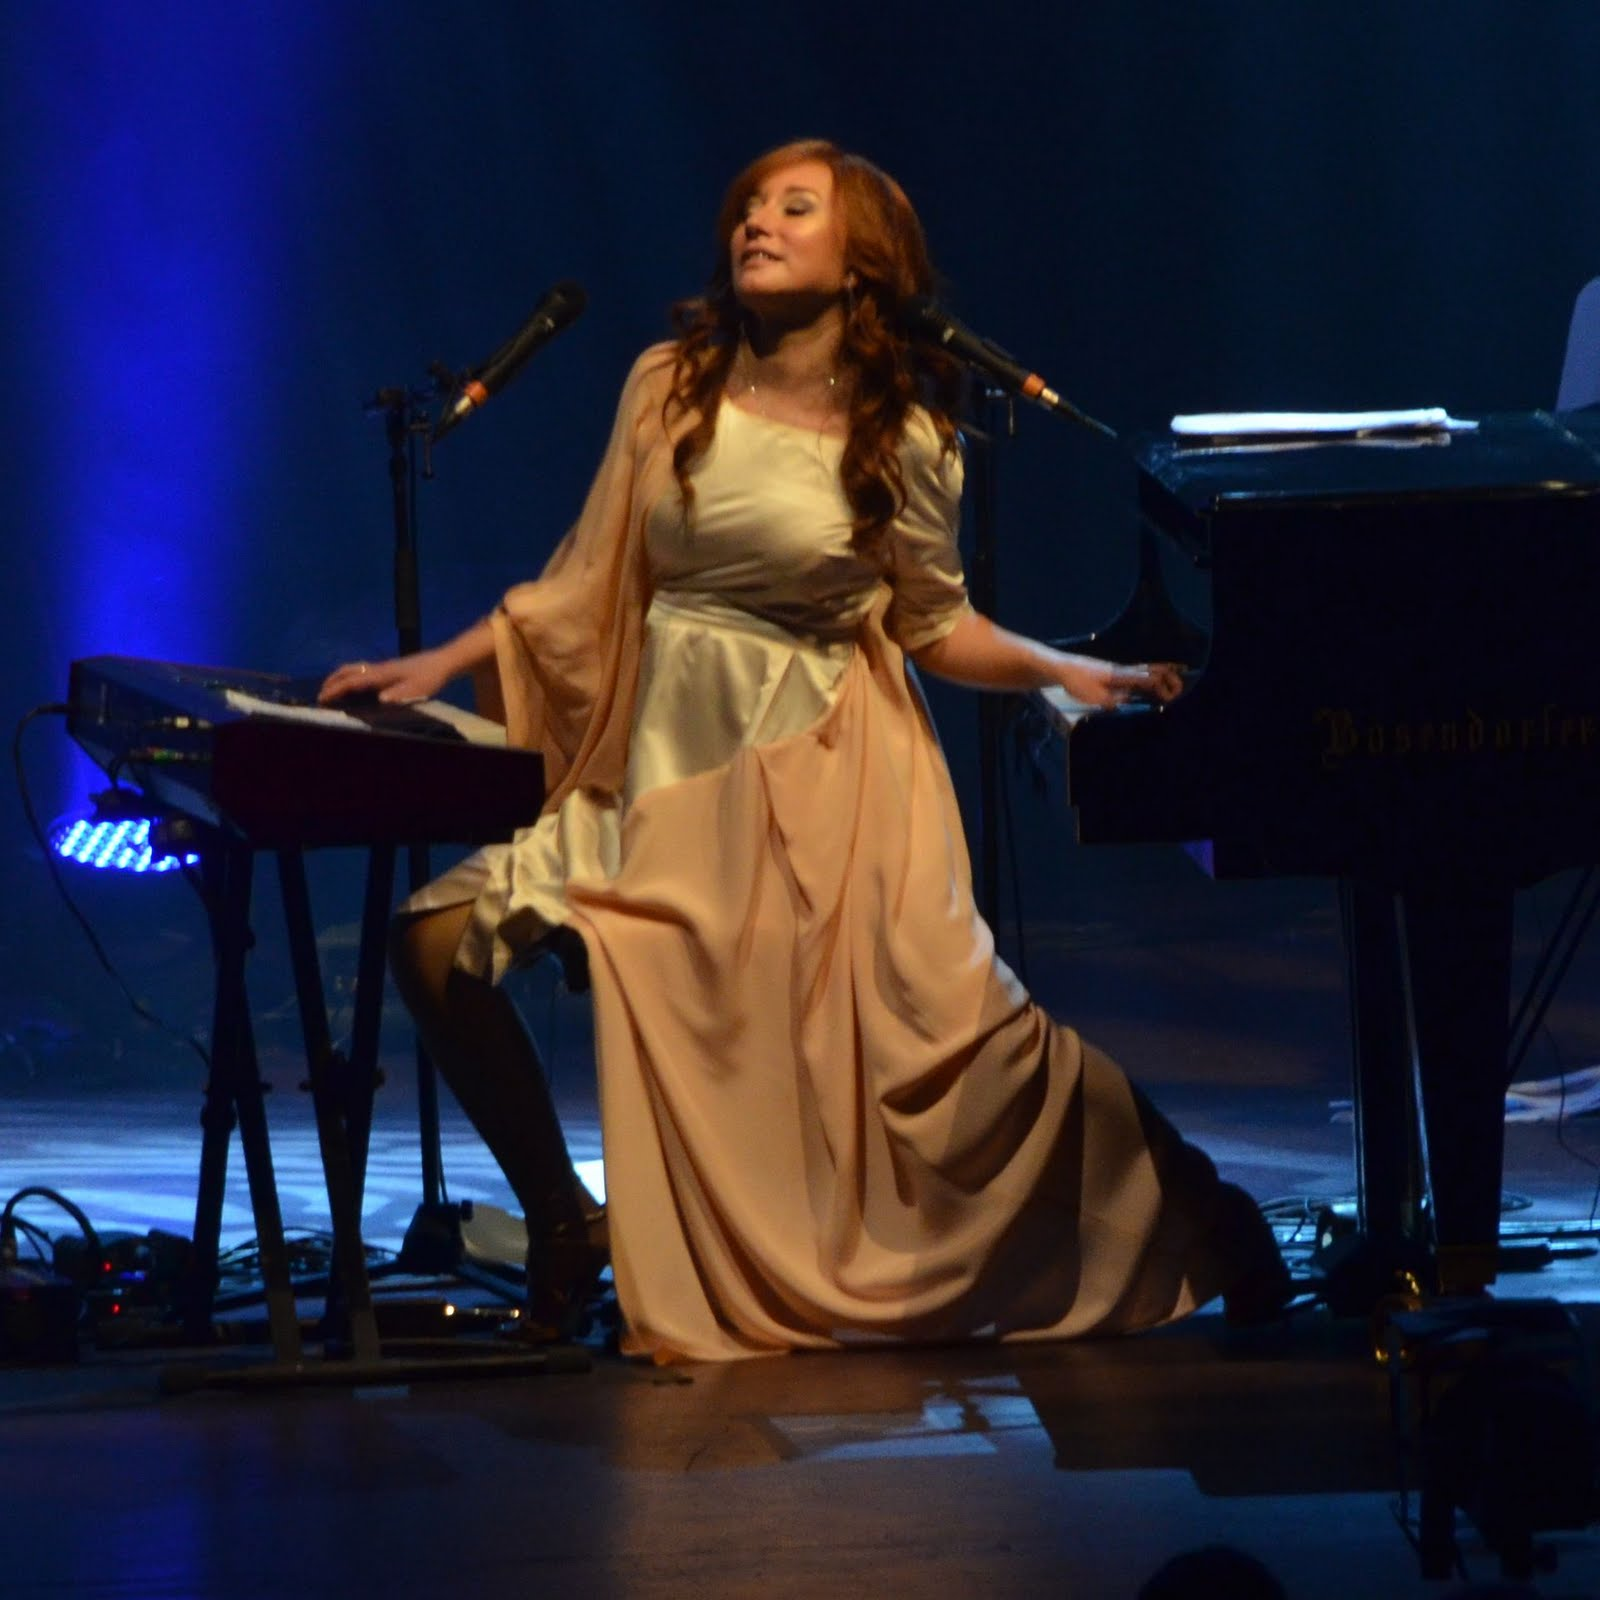 an introduction to the life of tori amos Tori amos, soundtrack: twister at age one, tori and her family moved to baltimore, where she spent much of her childhood she started playing piano at a very early age (2 1/2) at the age.